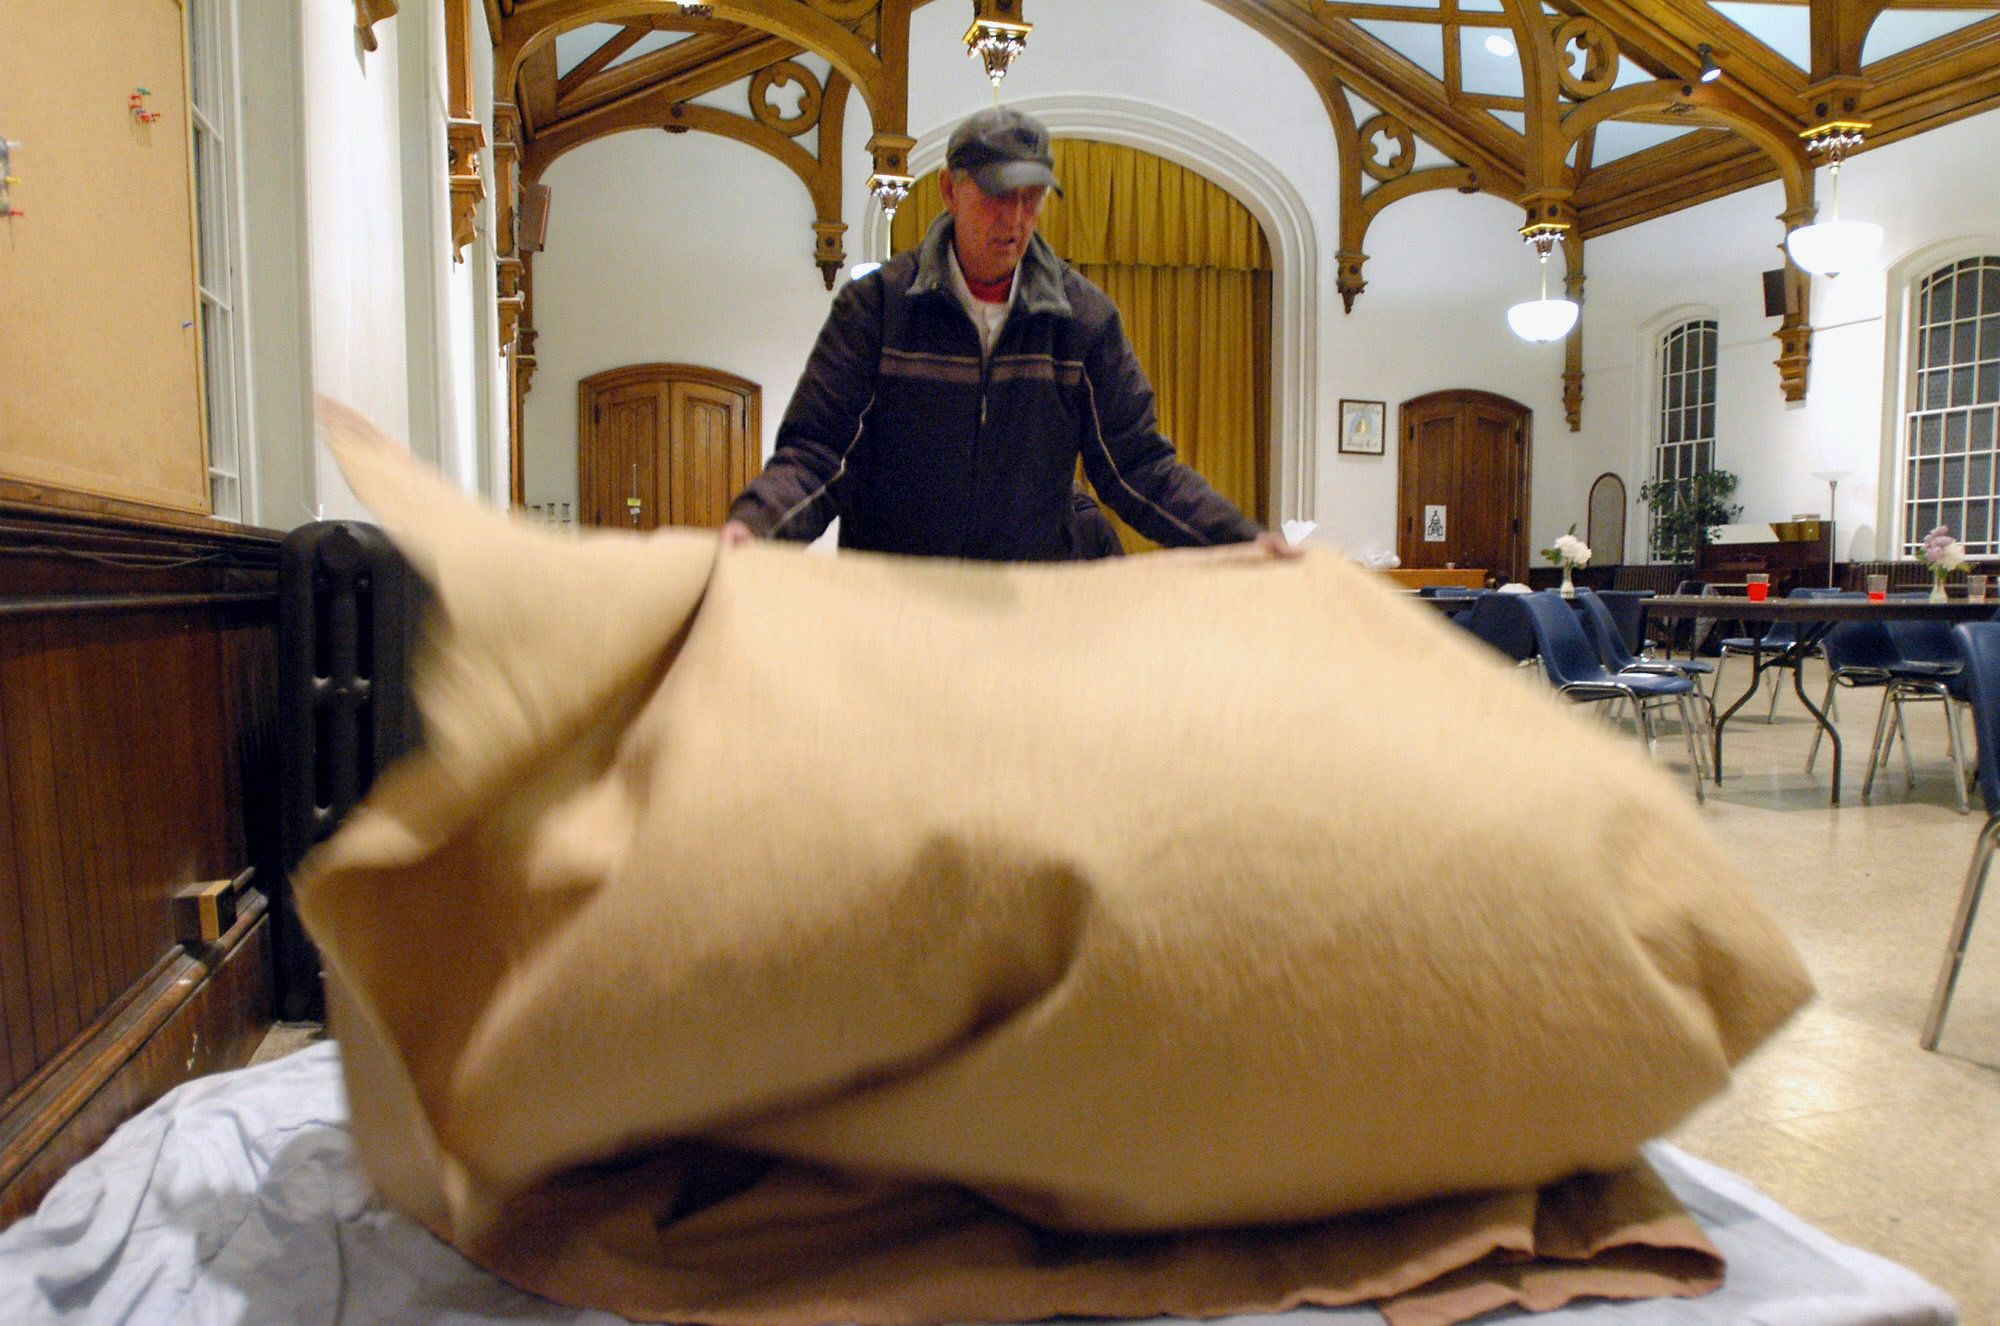 PROVIDENCE, RI - MAY 23:  Richard Golden prepares to sleep at a temporary homeless shelter at Beneficent Congregational Church in Providence, Rhode Island, on May 23, 2005. Rhode Island churches have programs for homeless people, offering meals and a spot on the floor to sleep. (Photo by John Nordell/The Christian Science Monitor via Getty Images)